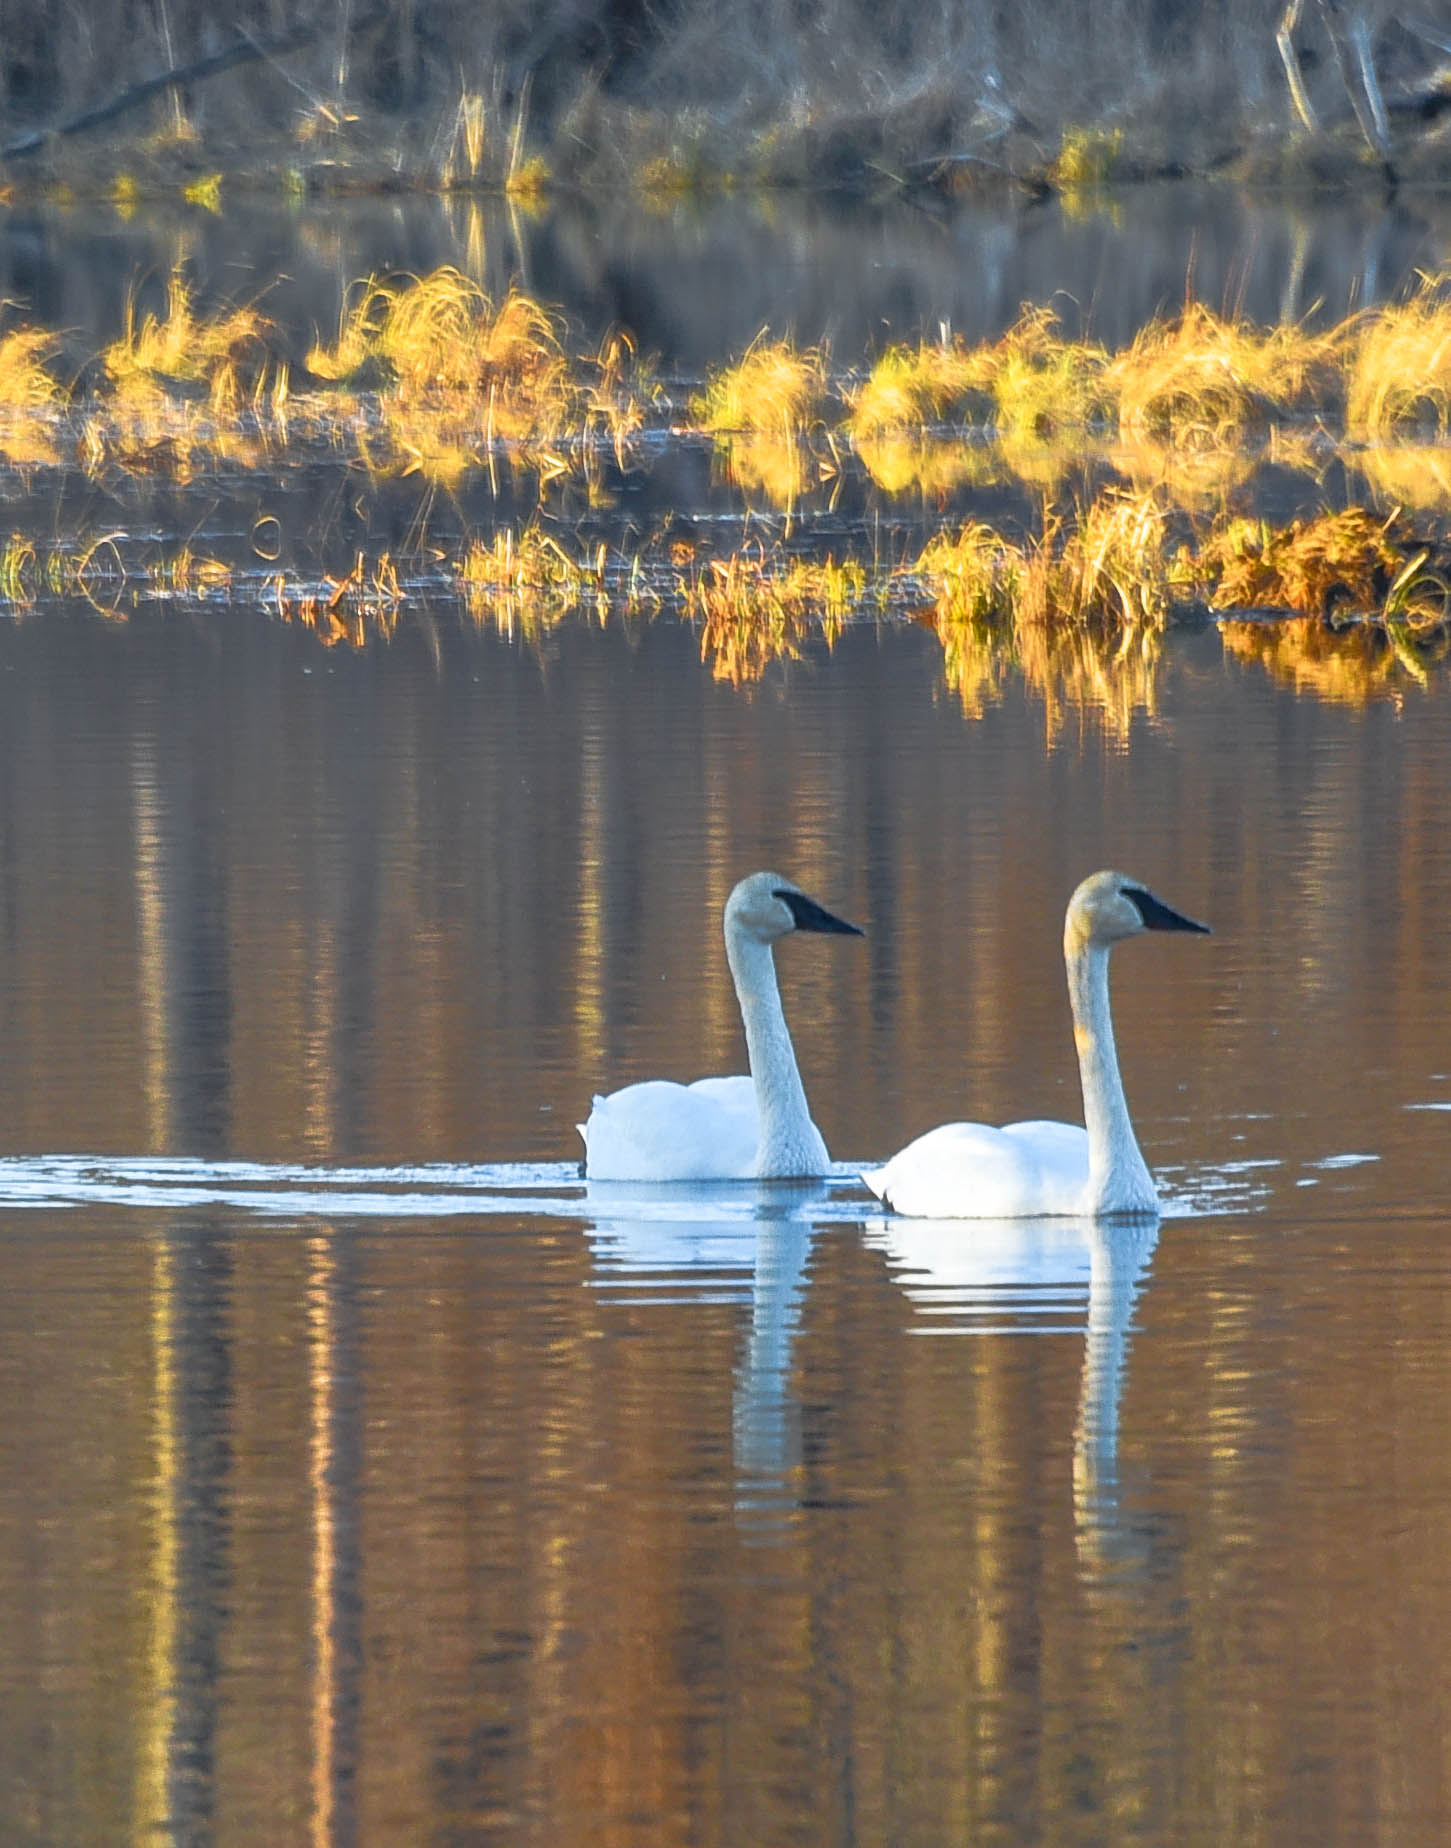 Swans in the Fall